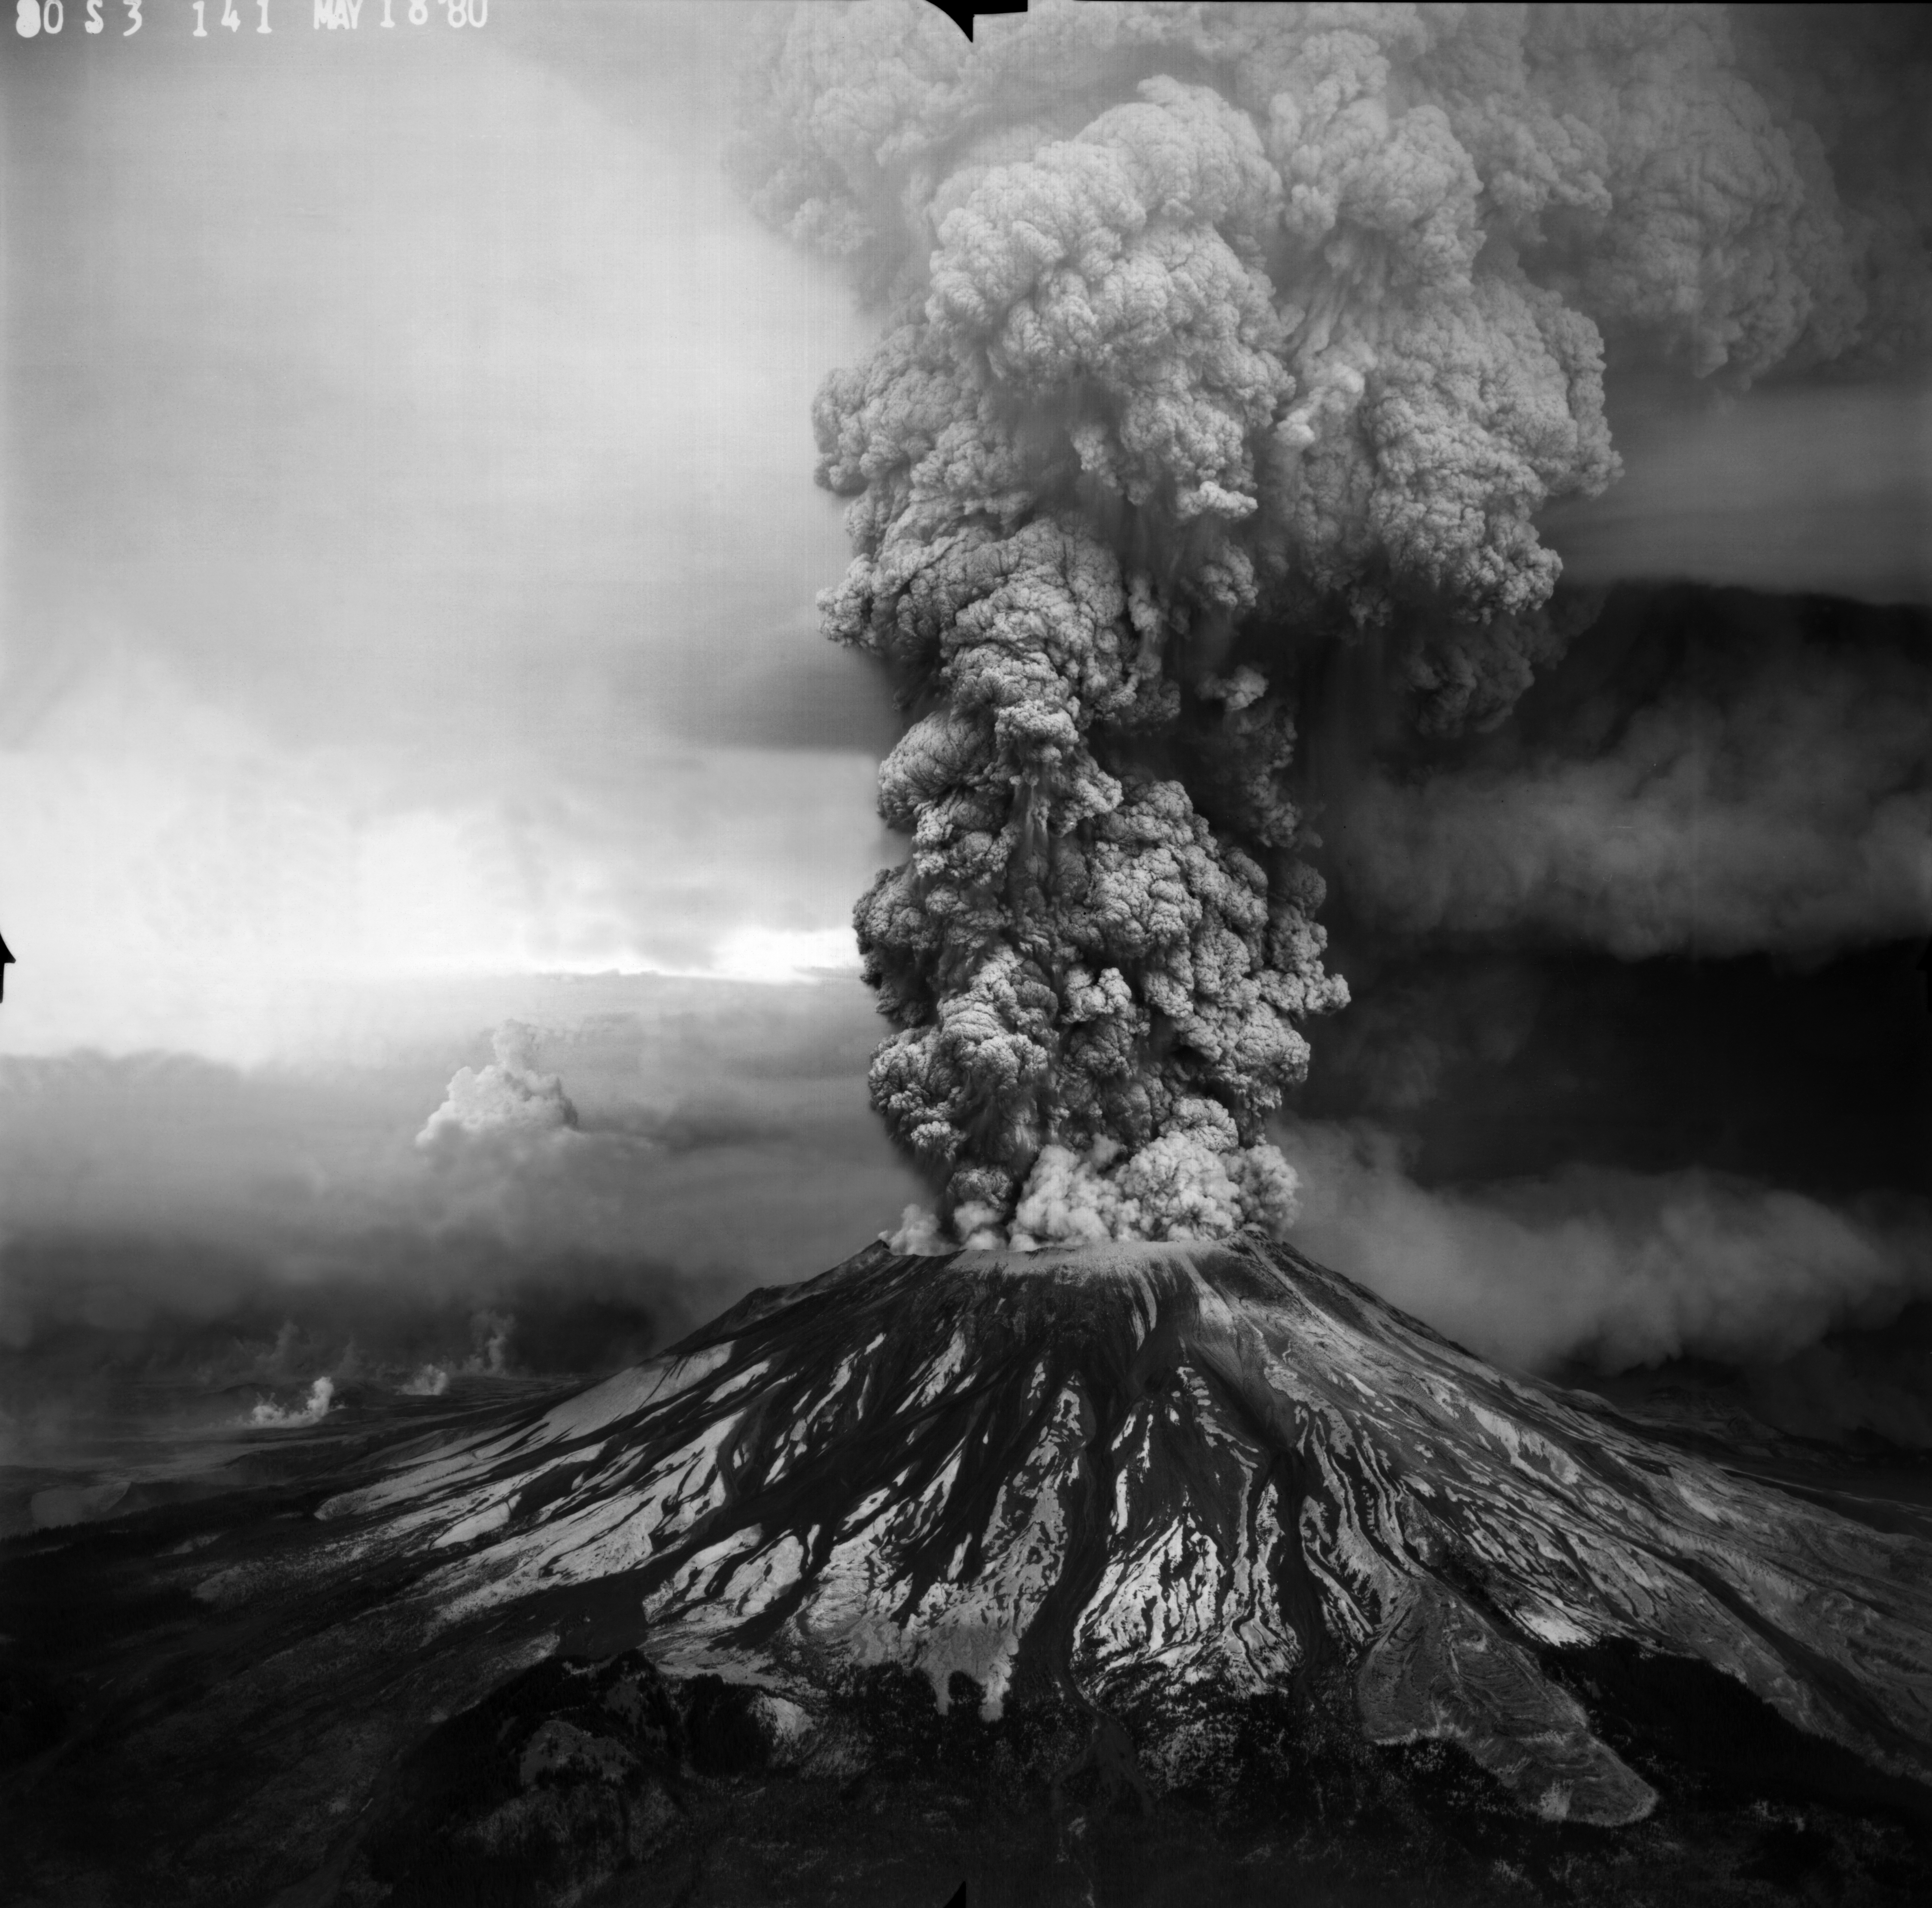 Blast From the Past: Ecological Resilience on Mount St. Helens